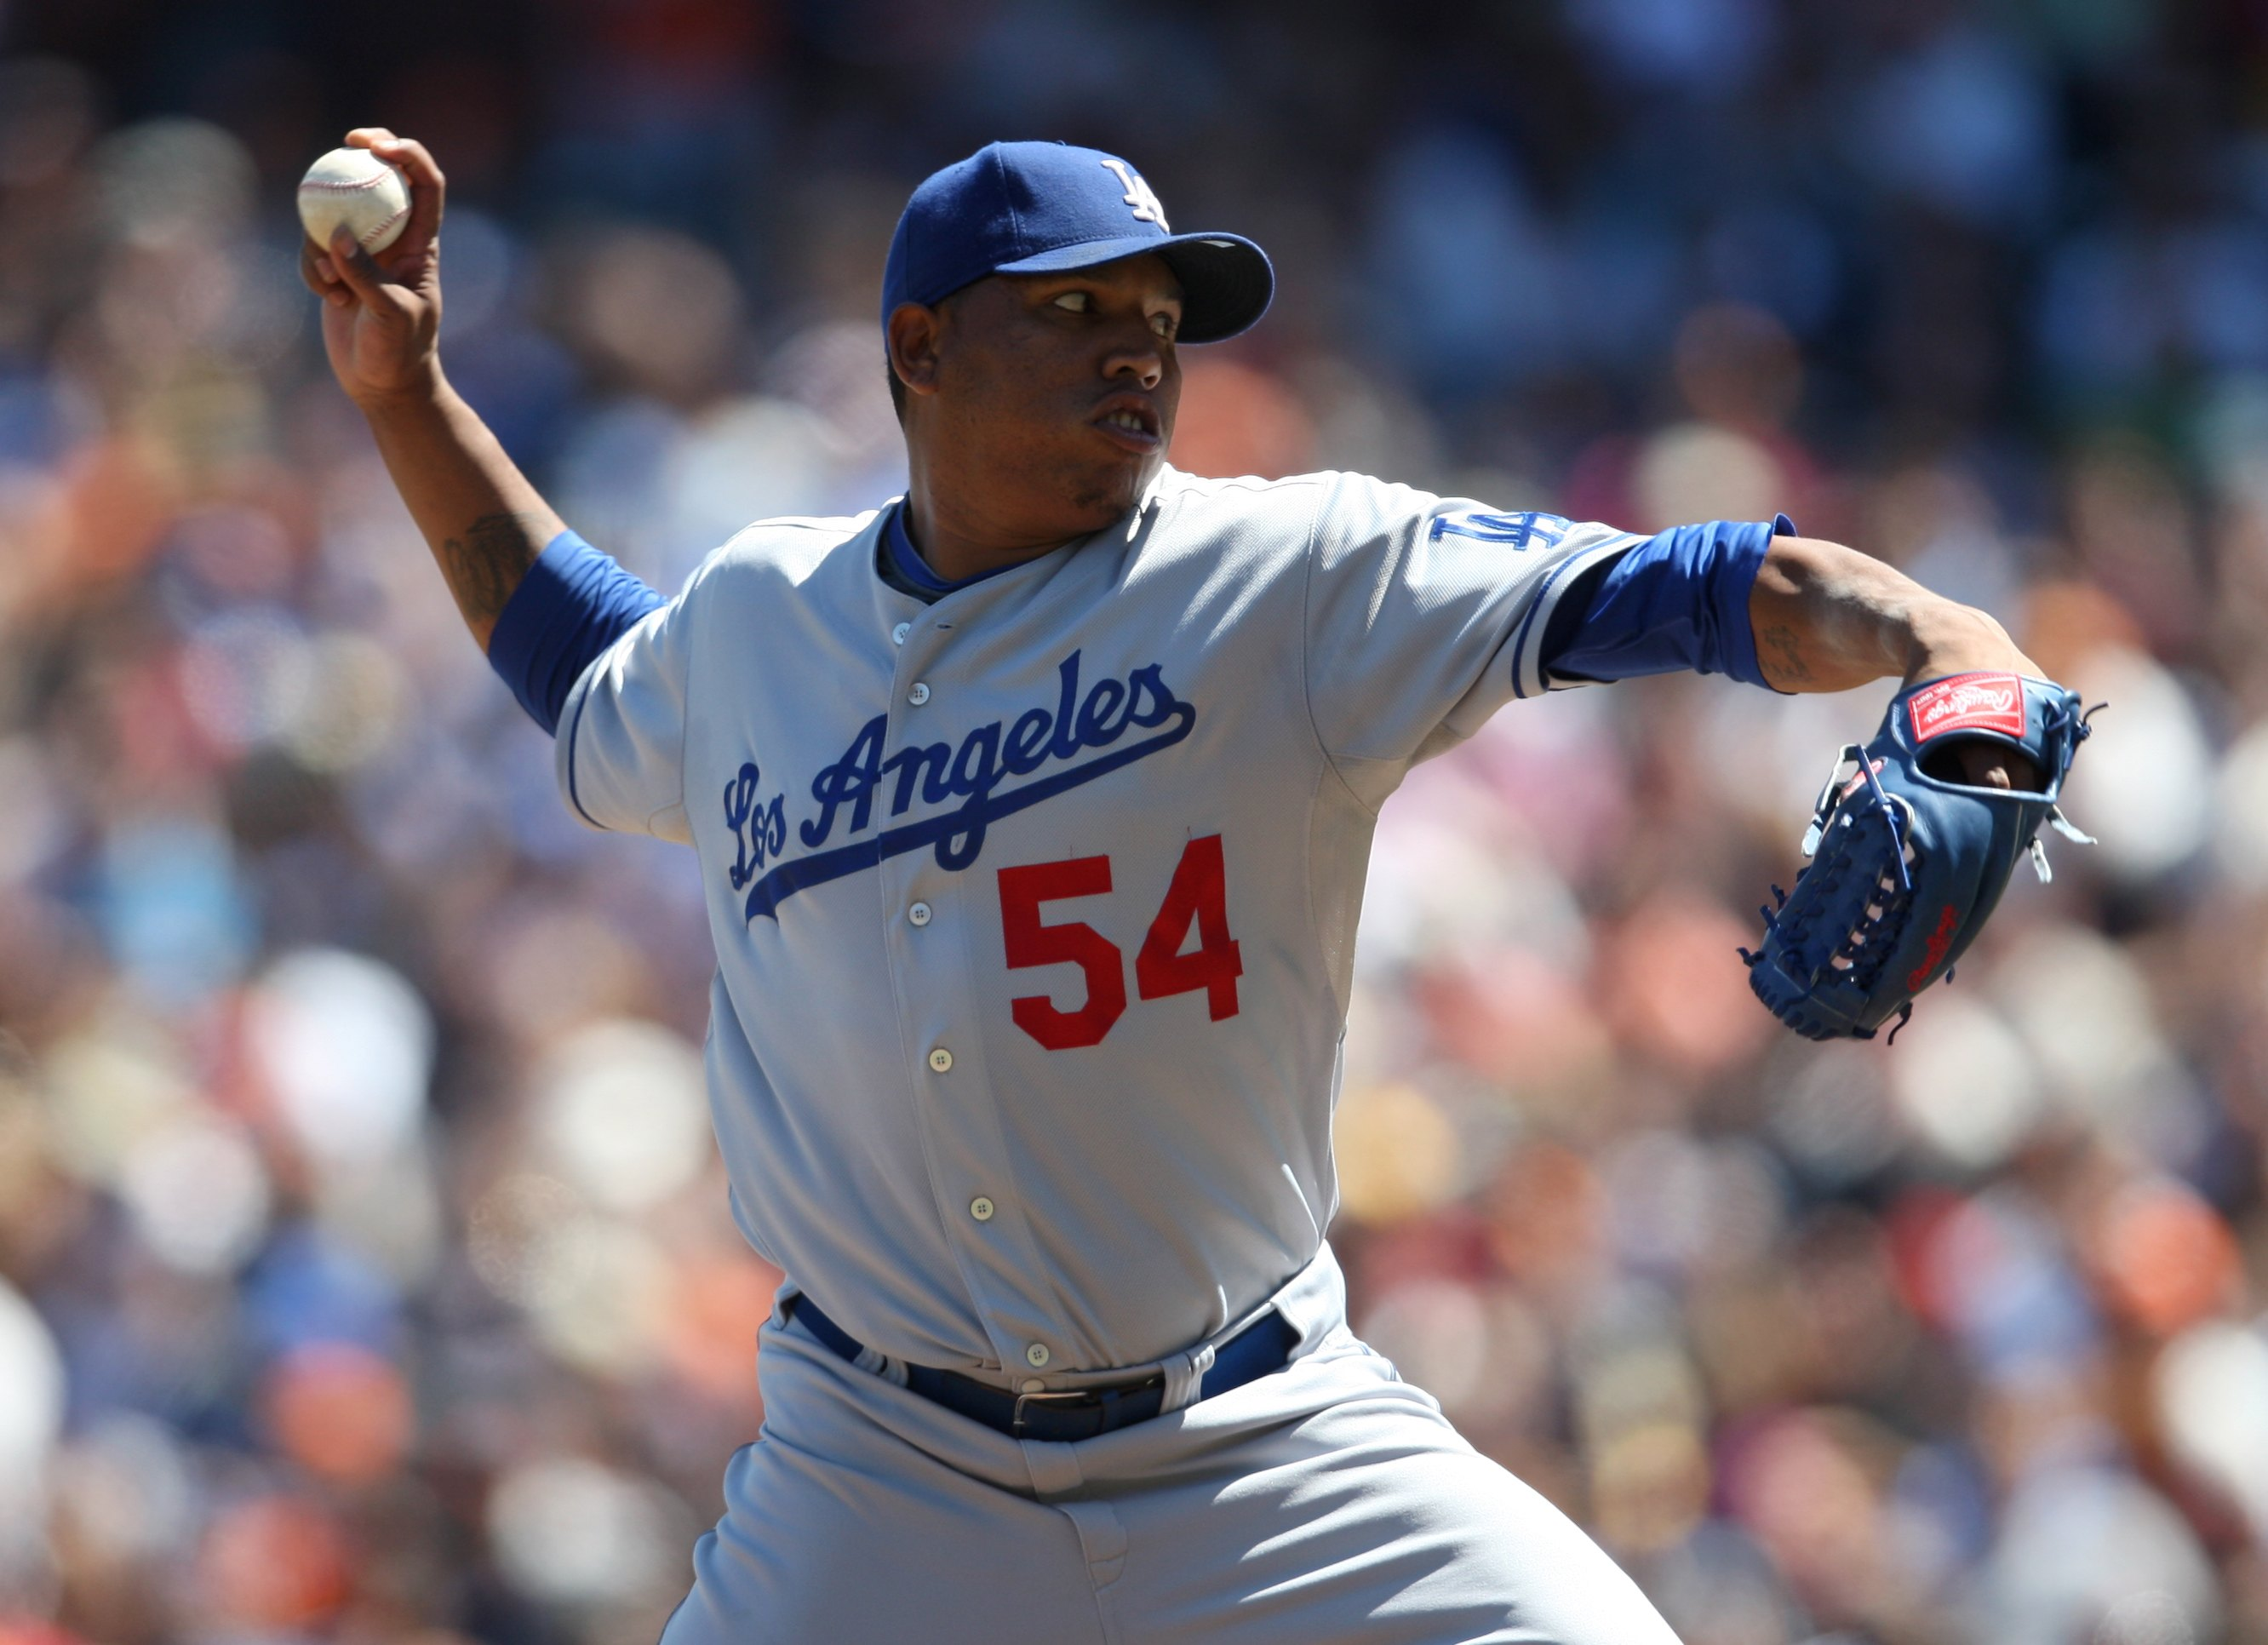 http://sports.cbsimg.net/images/mlb/photogallery/081010belisario.jpg